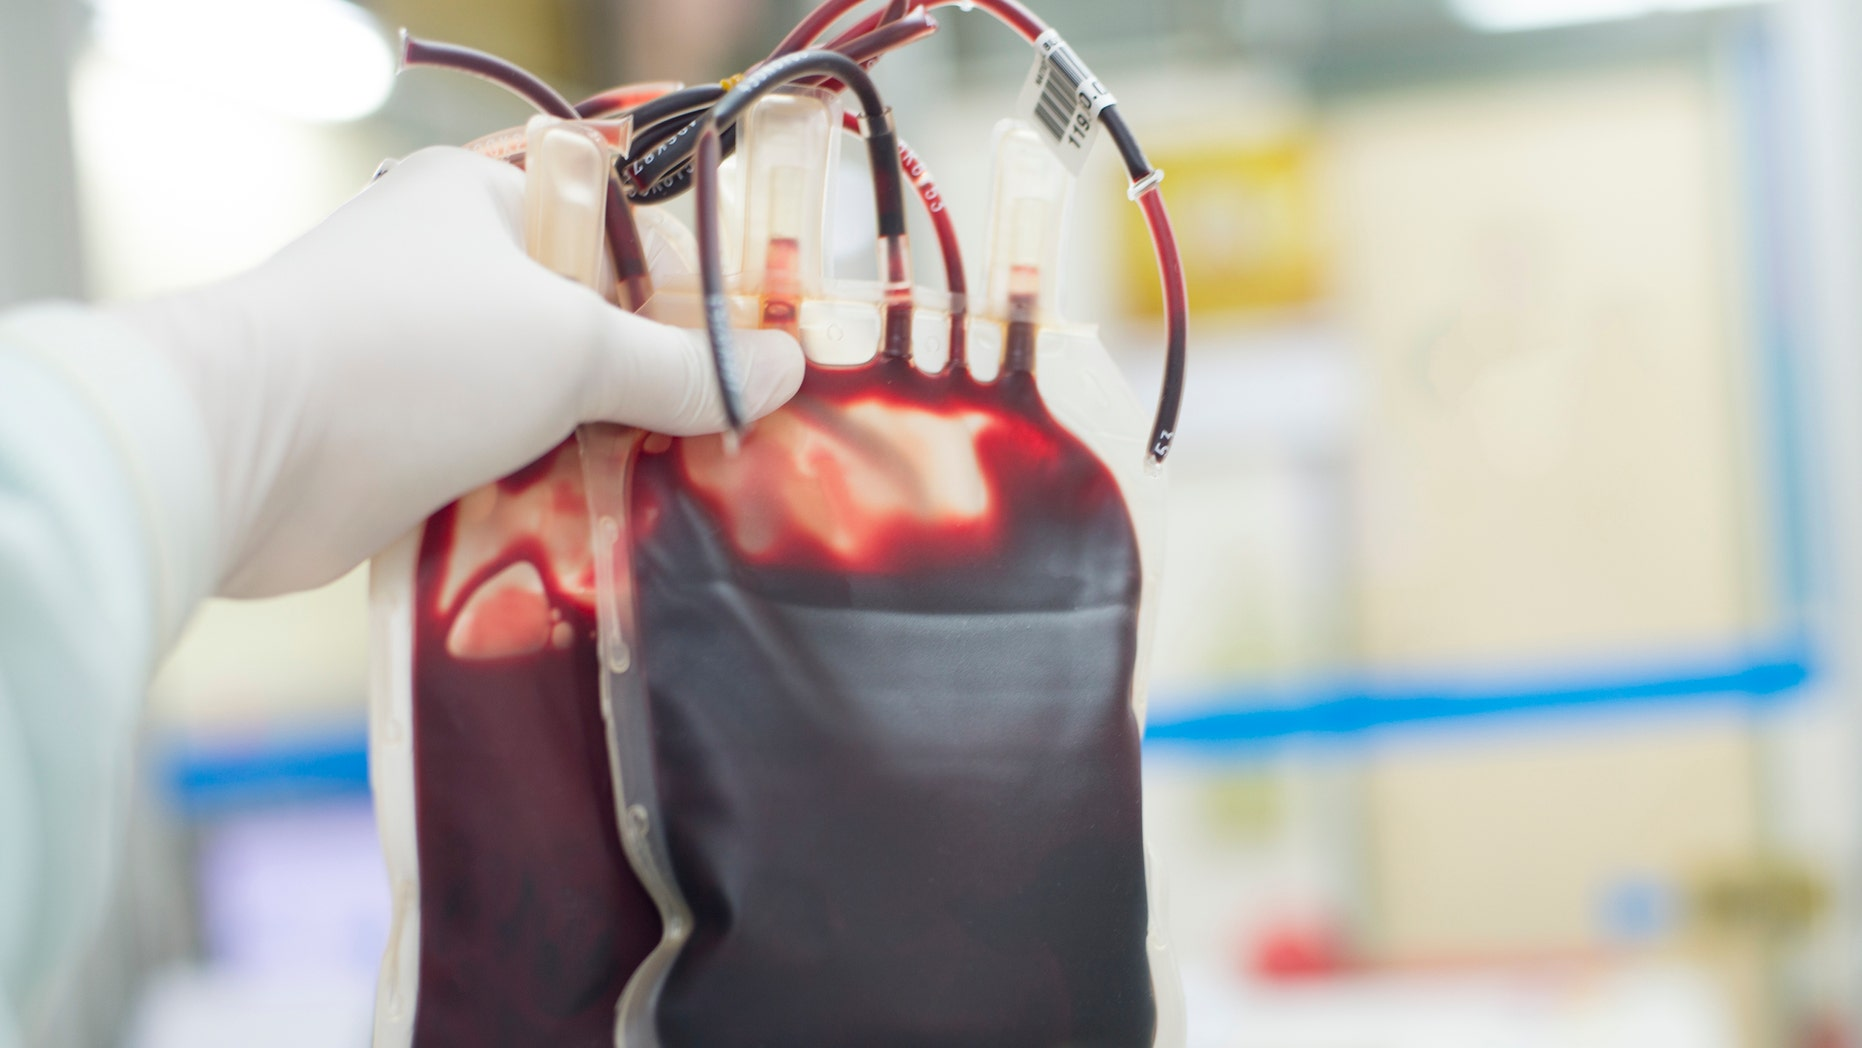 Beware of buying young people's blood to prevent aging, FDA says